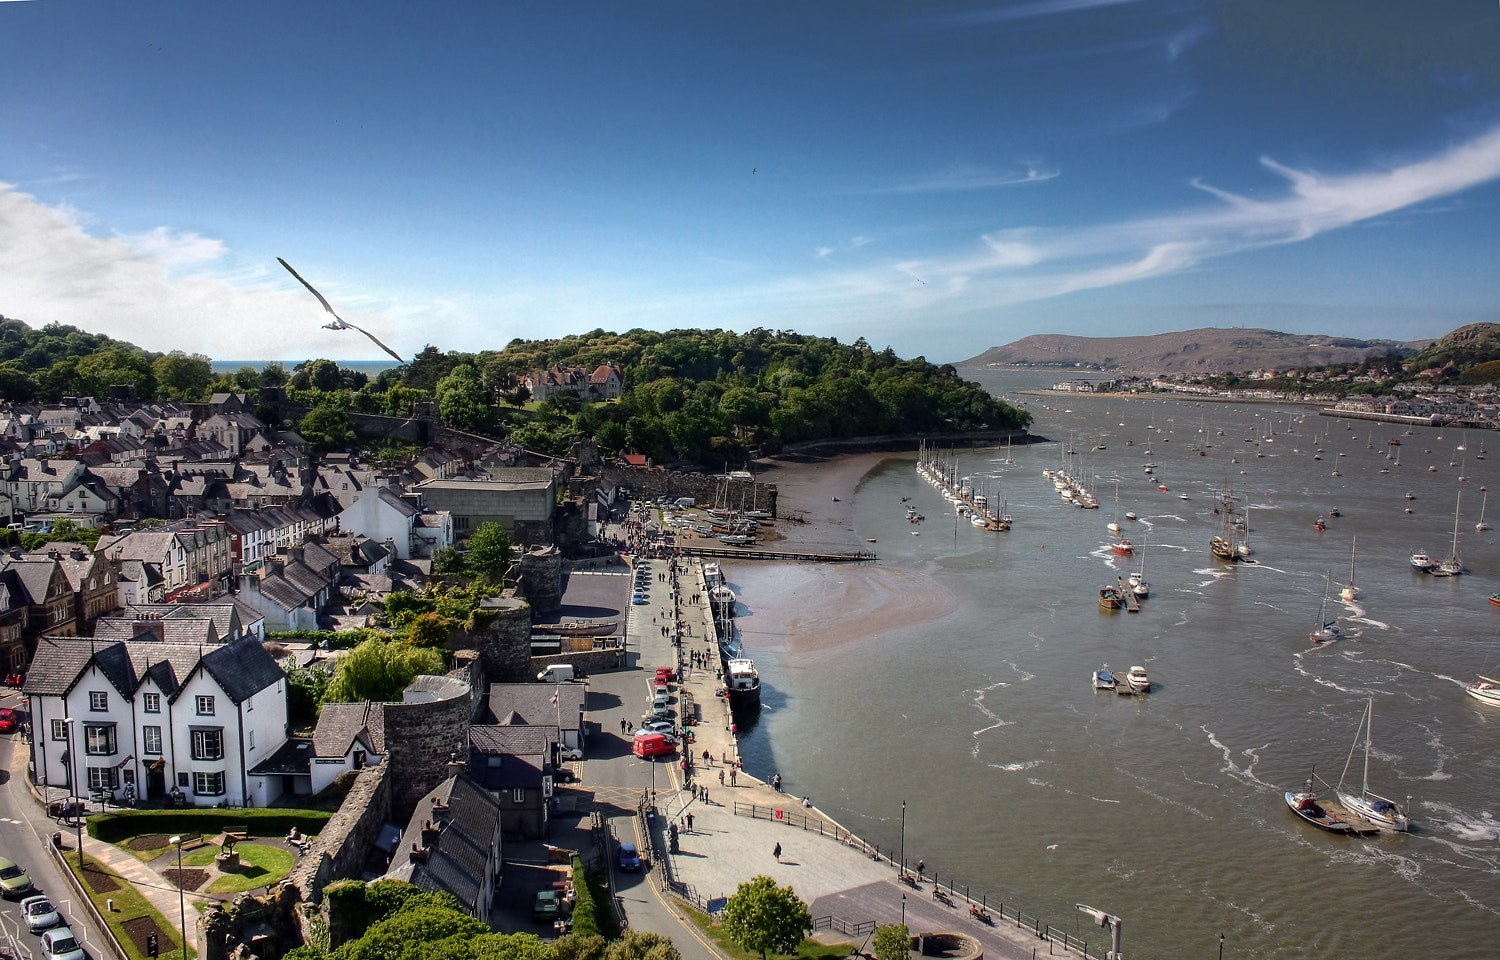 Photograph A View from the Conwy Castle by Dmitry Stepanenko on 500px